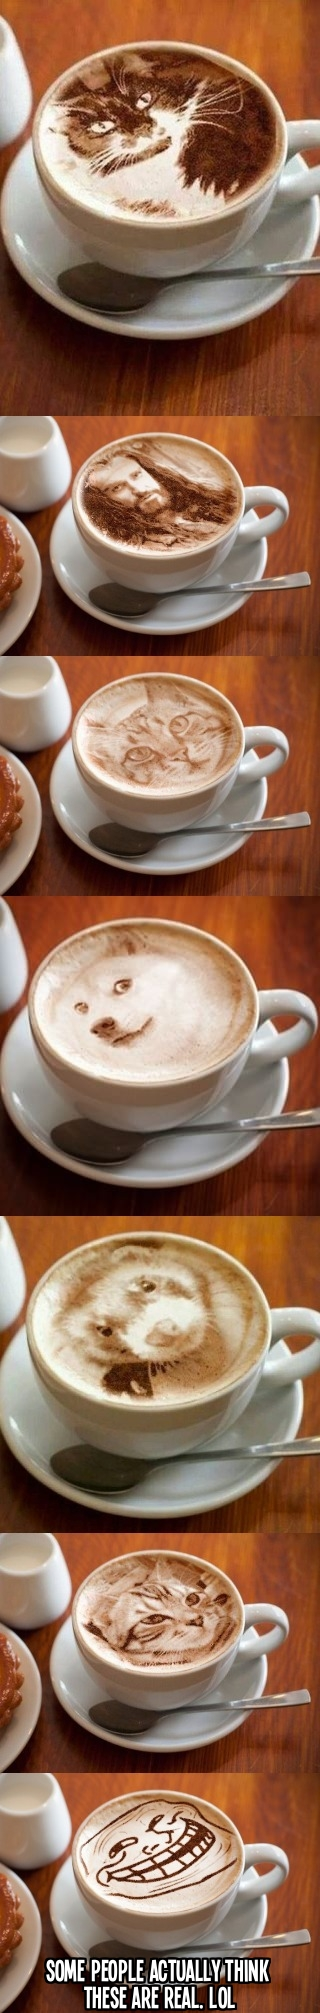 Incredible latte art will amaze you!